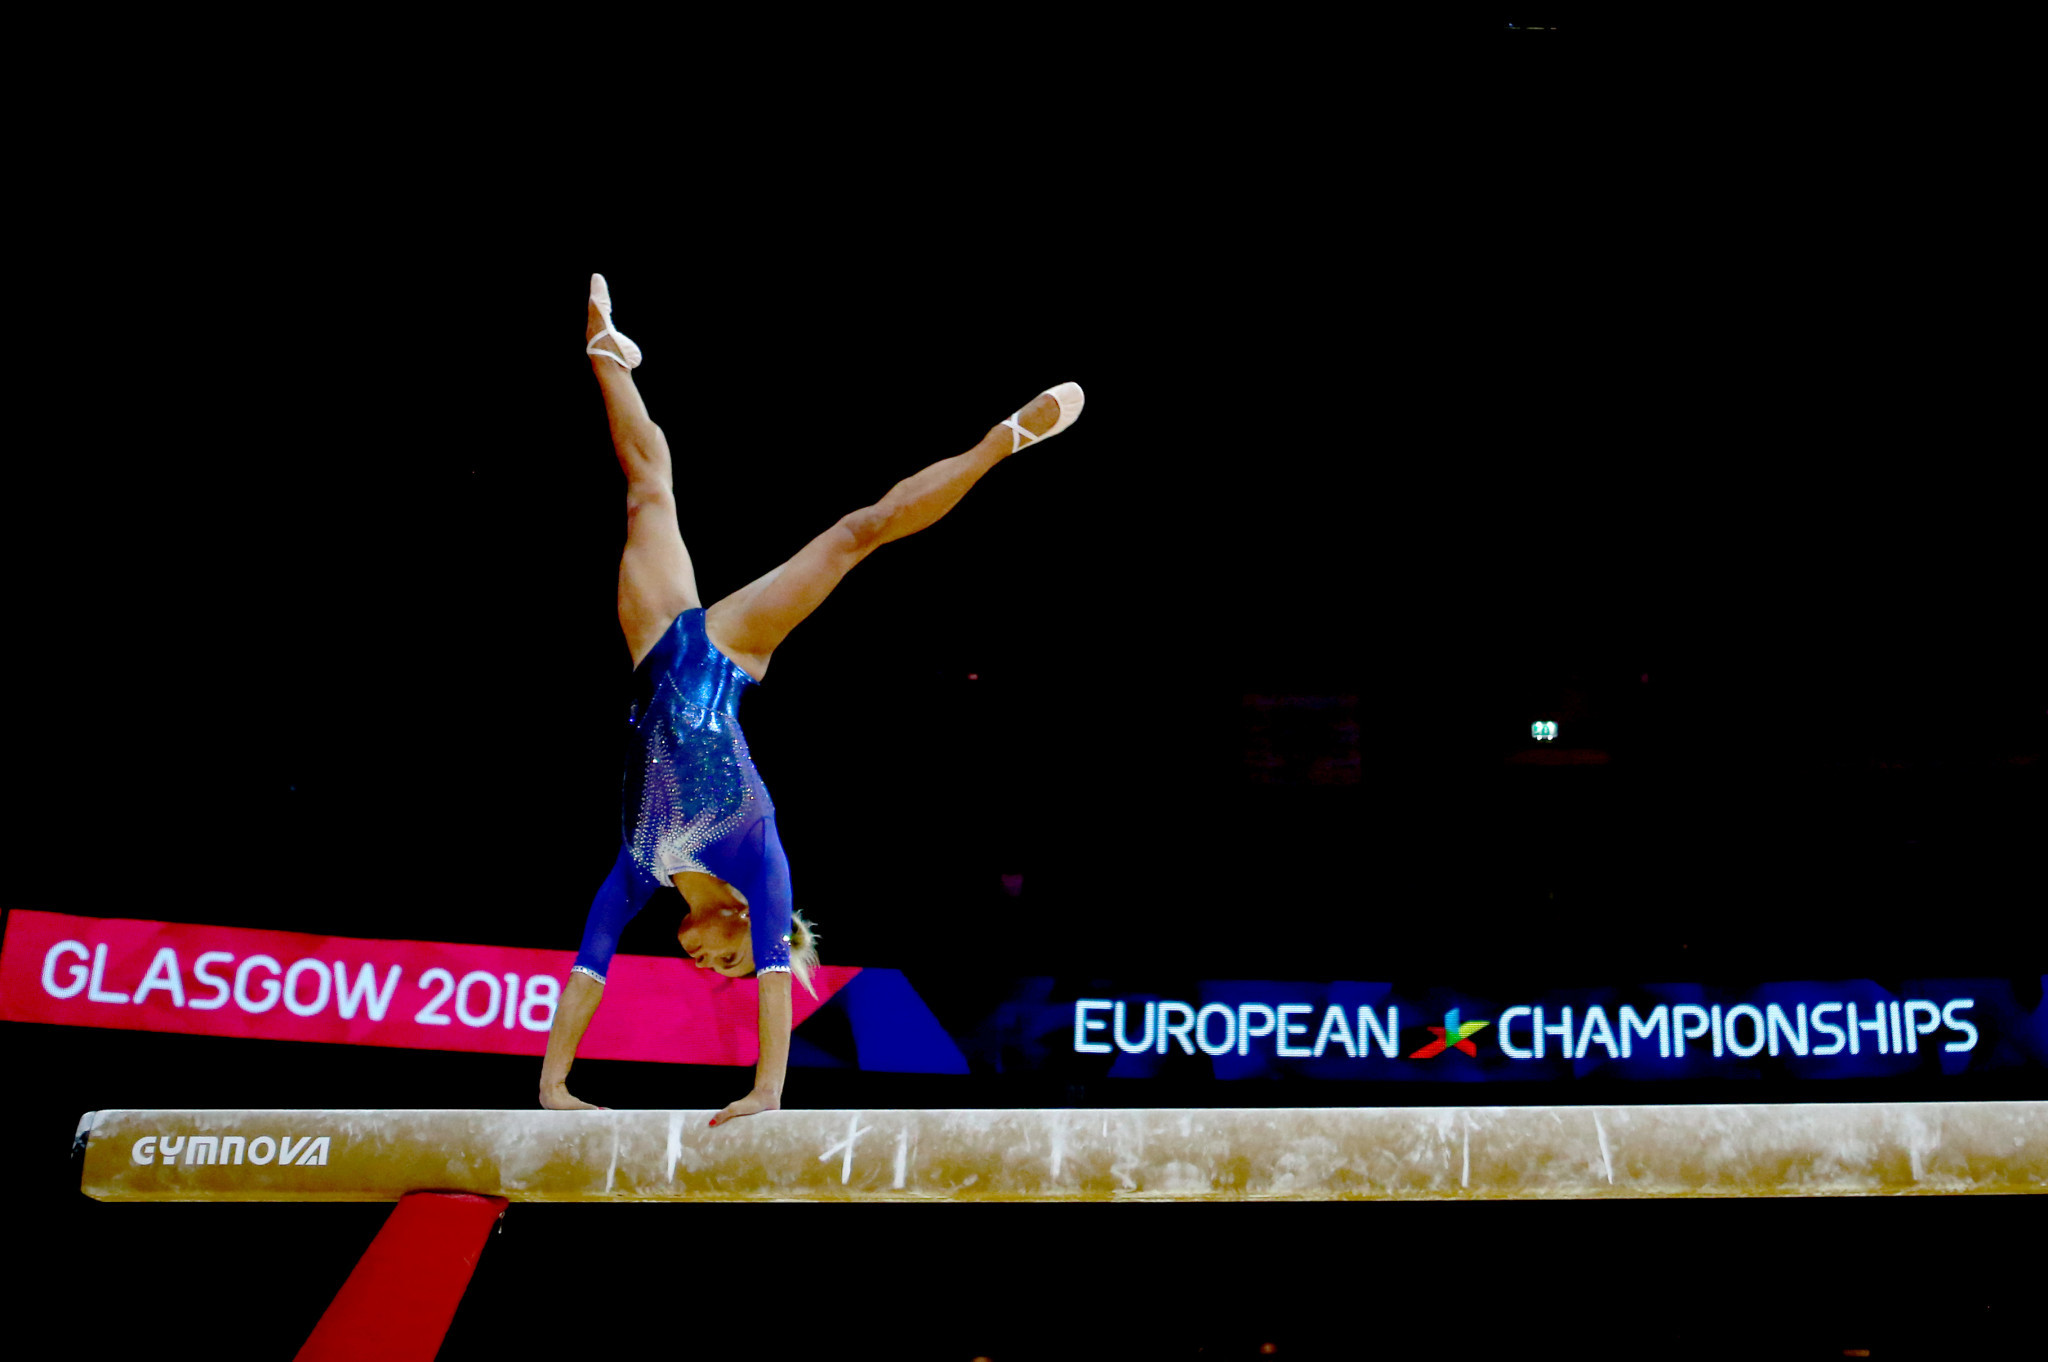 Brand new European Championships open in Glasgow